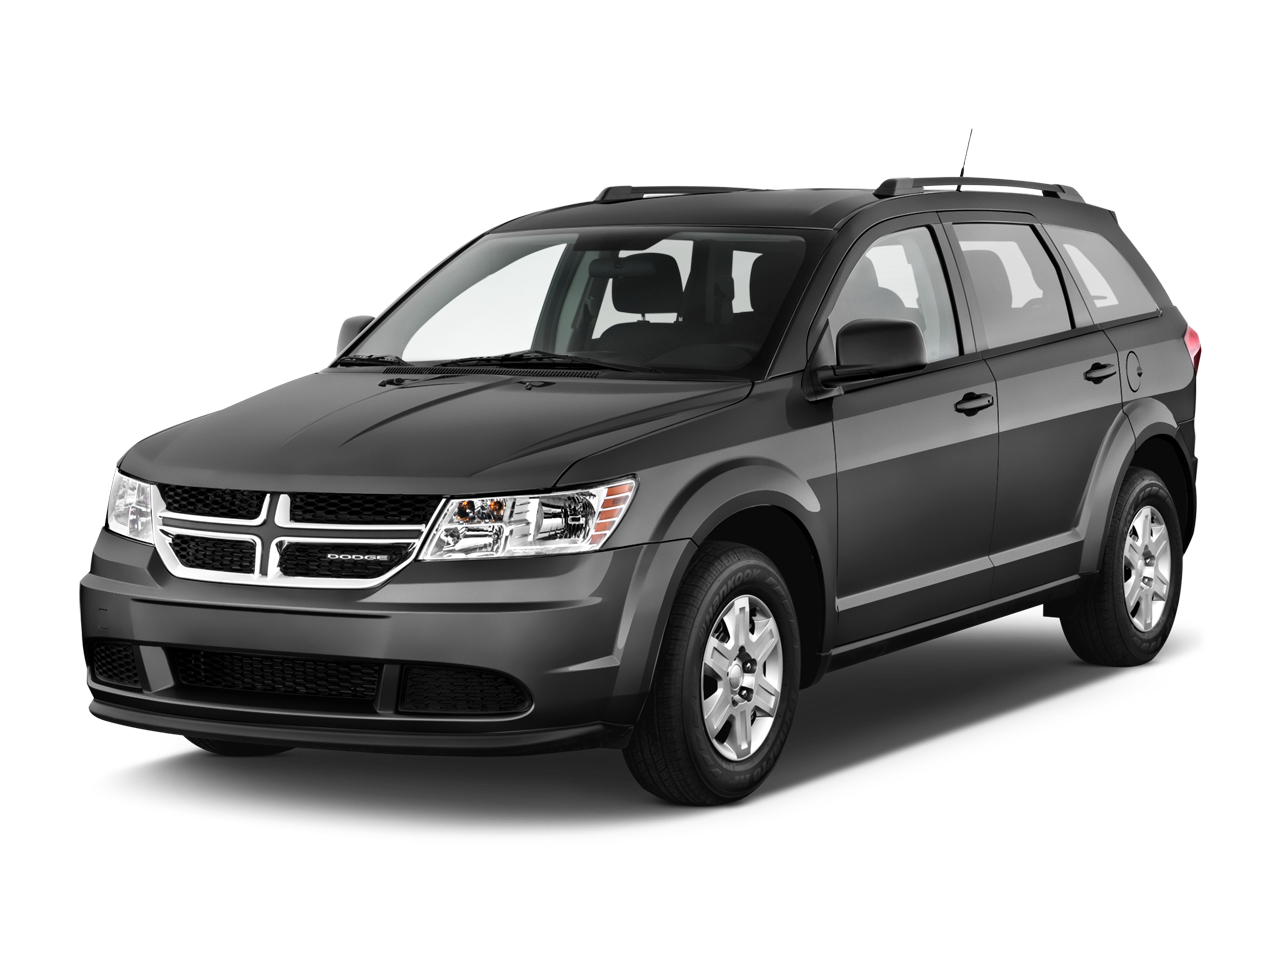 new 2017 dodge journey gt near boone ia pat clemons inc. Black Bedroom Furniture Sets. Home Design Ideas